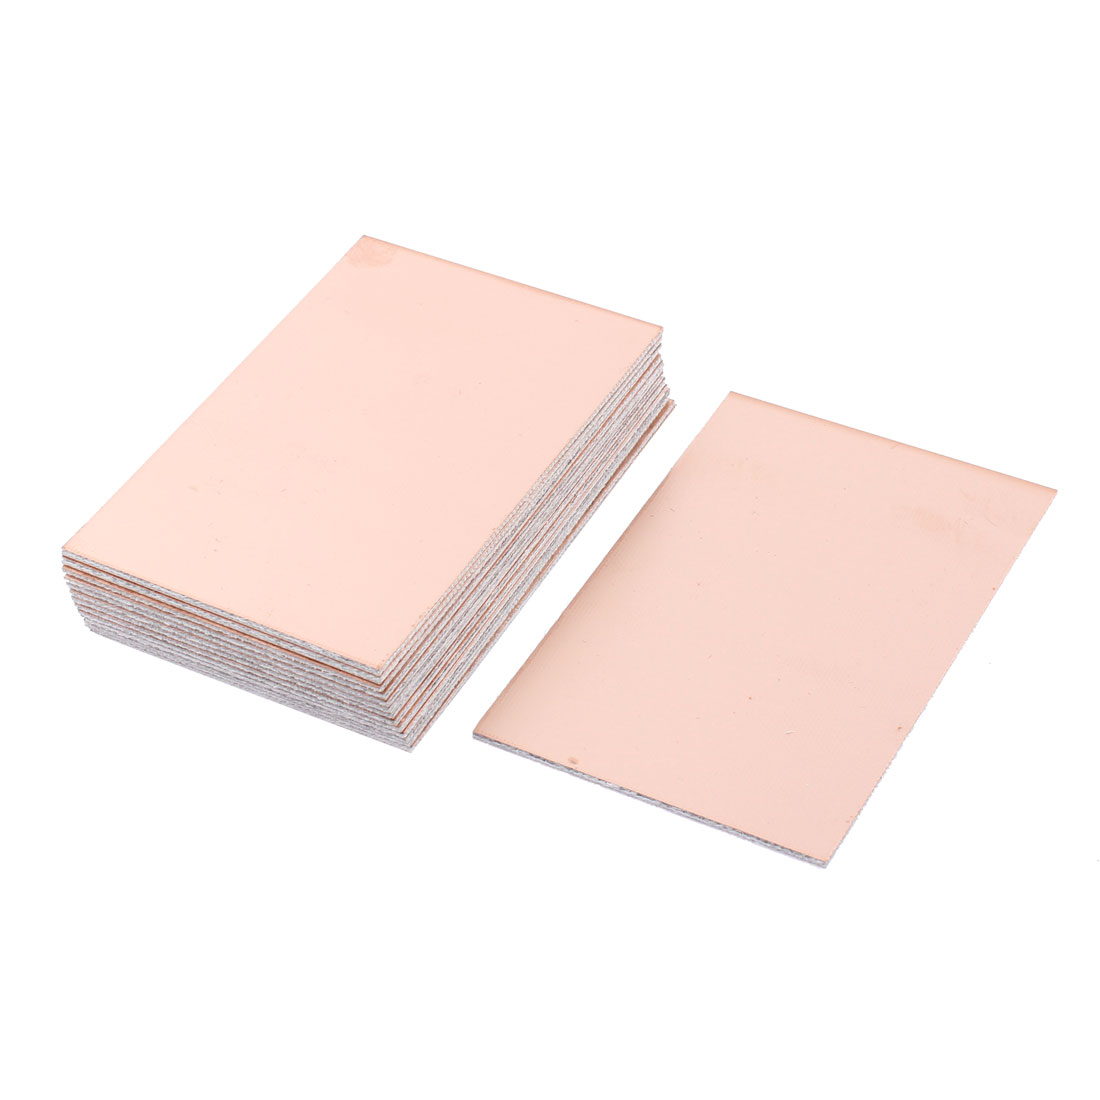 15 Pcs FR-4 Copper Clad Double Side PCB Laminate Board 100mmx70mm 1.6mm